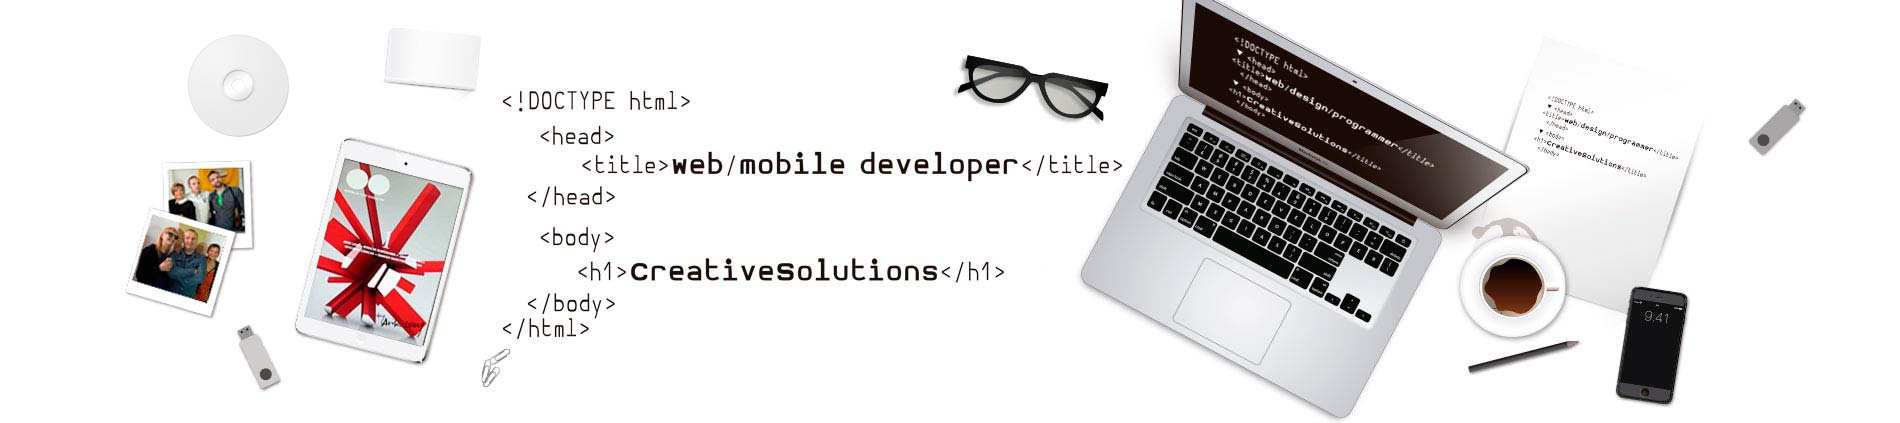 amparo megias web/mobile development